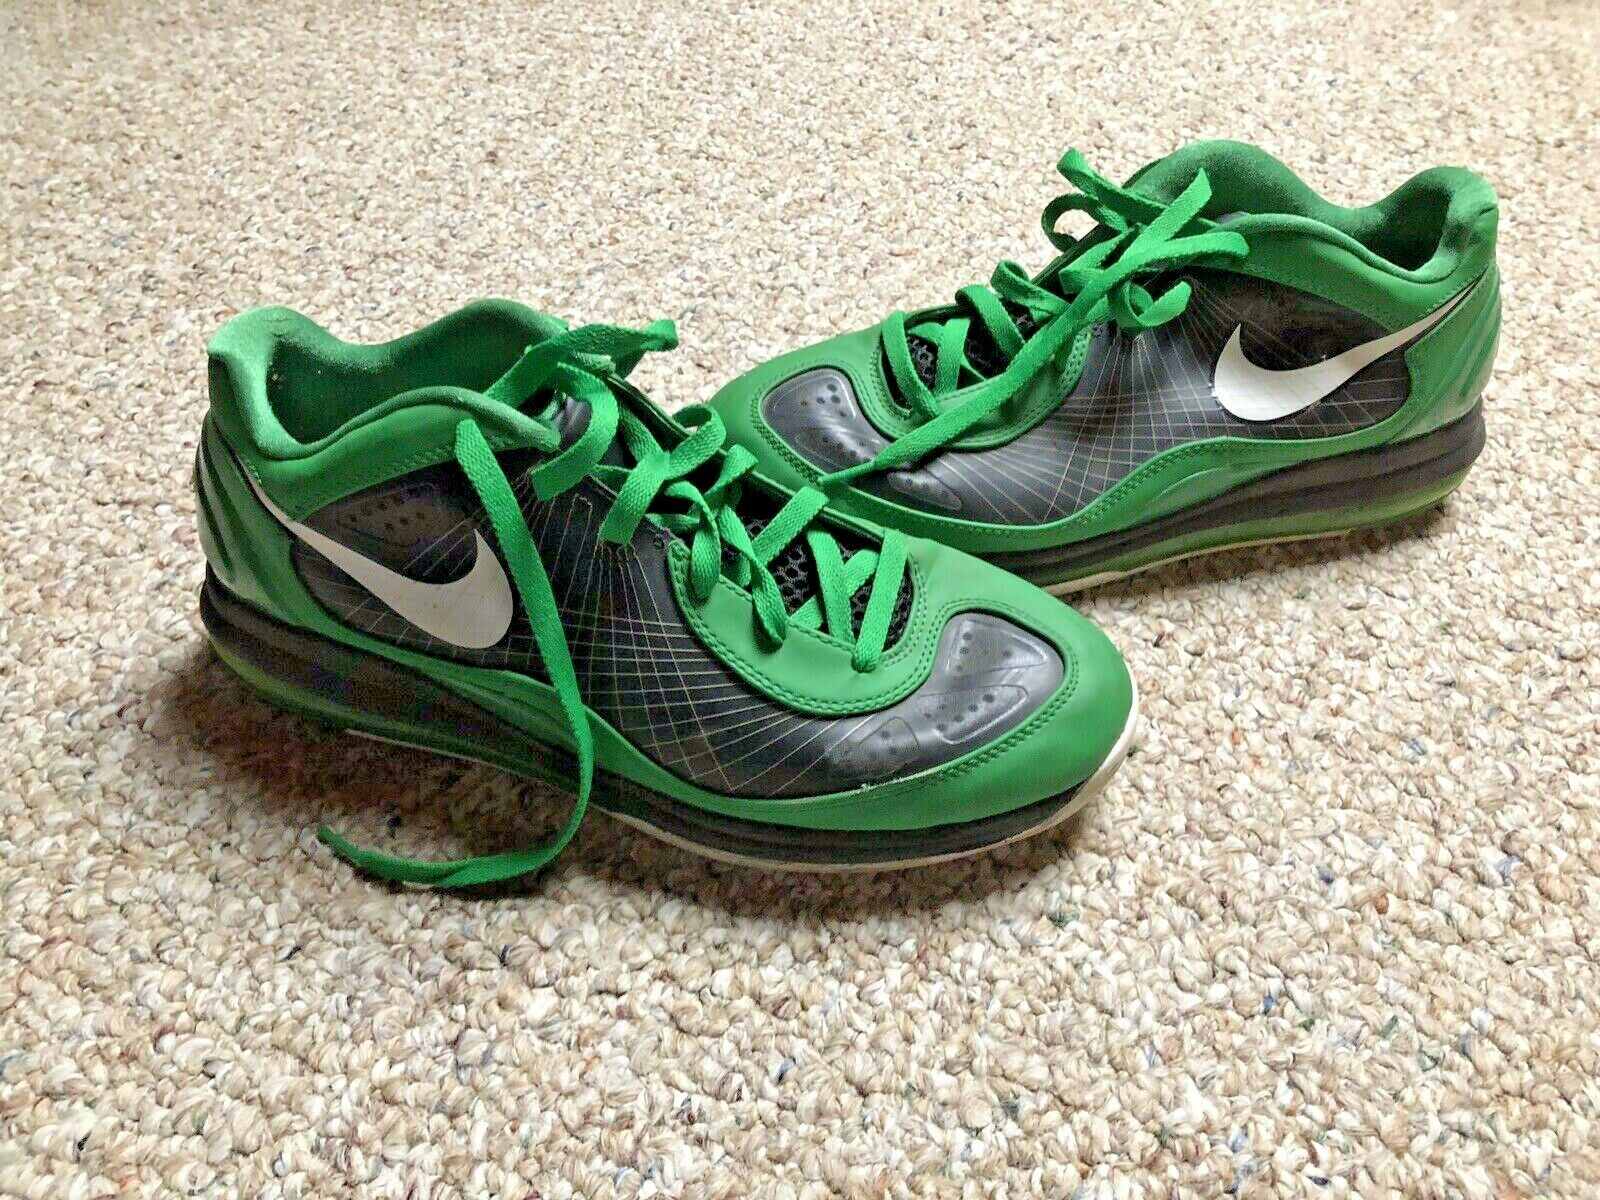 Hombre Nike Air Max Bb Rajon Rando Boston Celtics Zapatos 441947-301 Talla 11